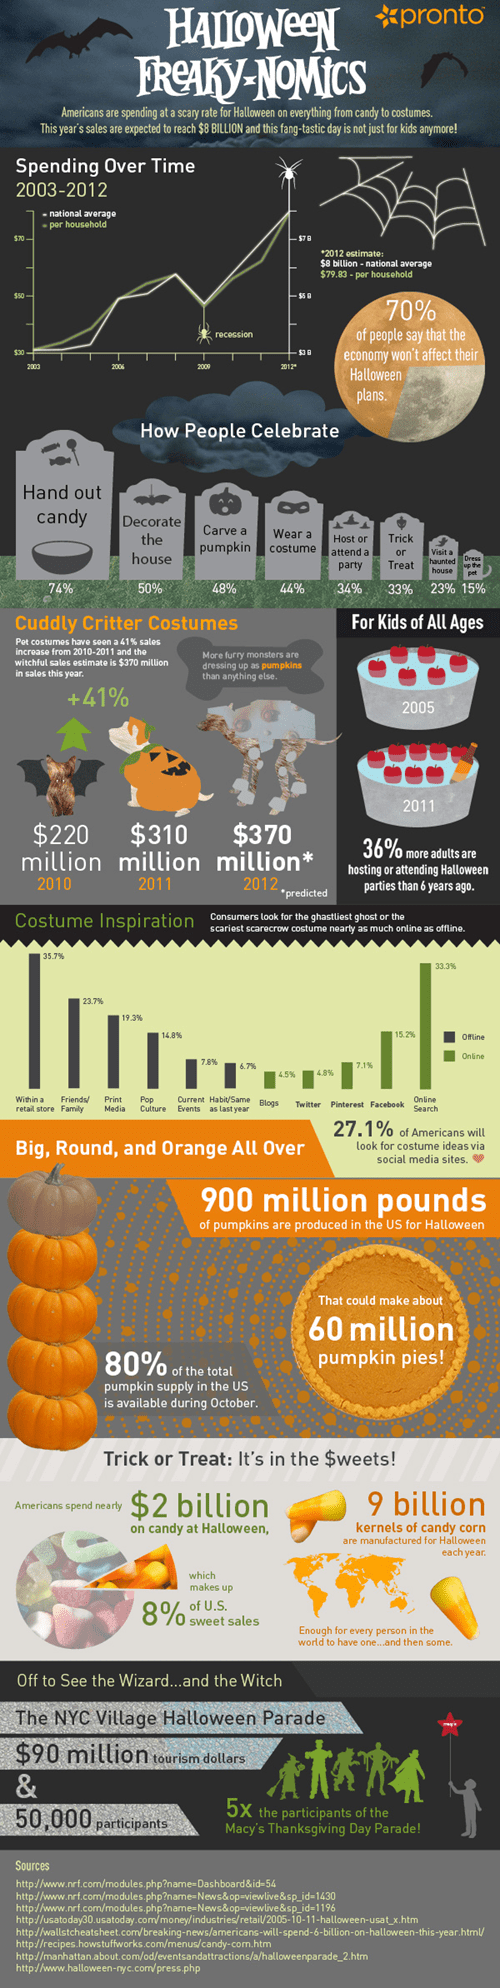 halloween Economics infographic - 7836868864